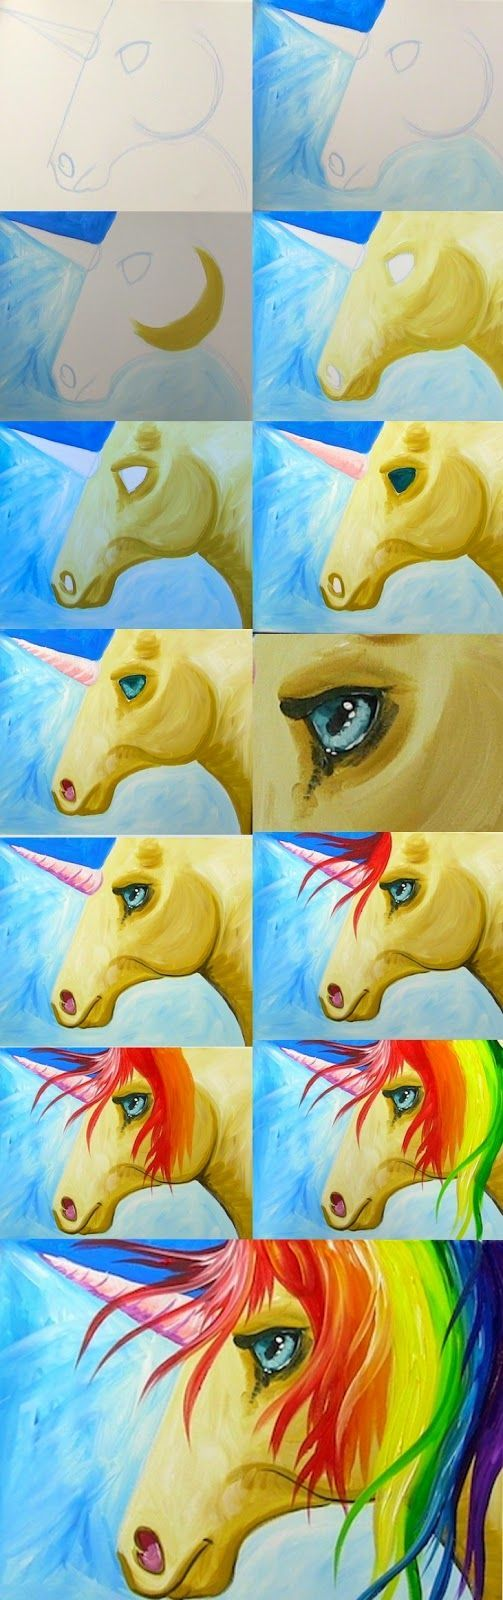 19 fun and easy painting ideas for kids - Kids Painting Images